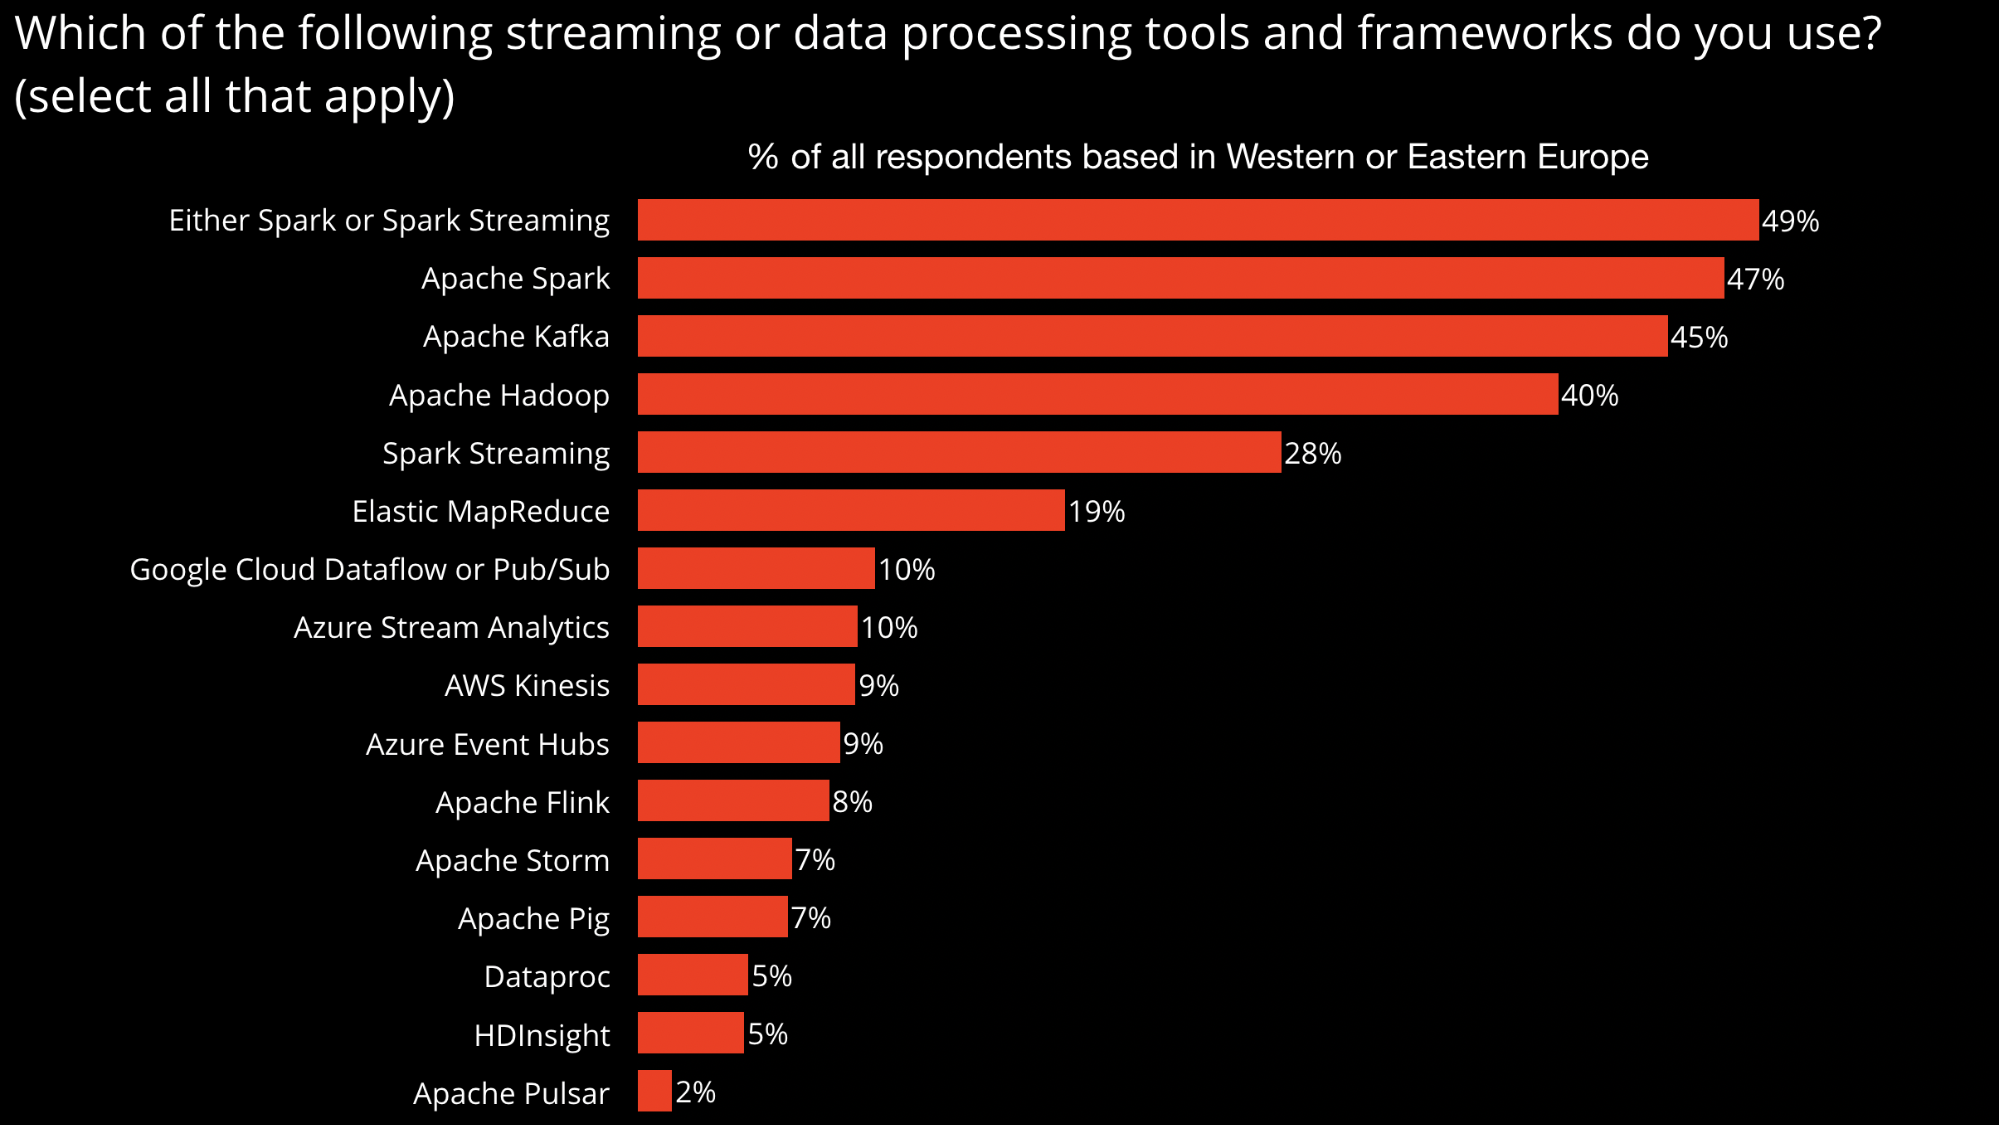 popular (batch and streaming) data processing tools used by respondents based in Europe